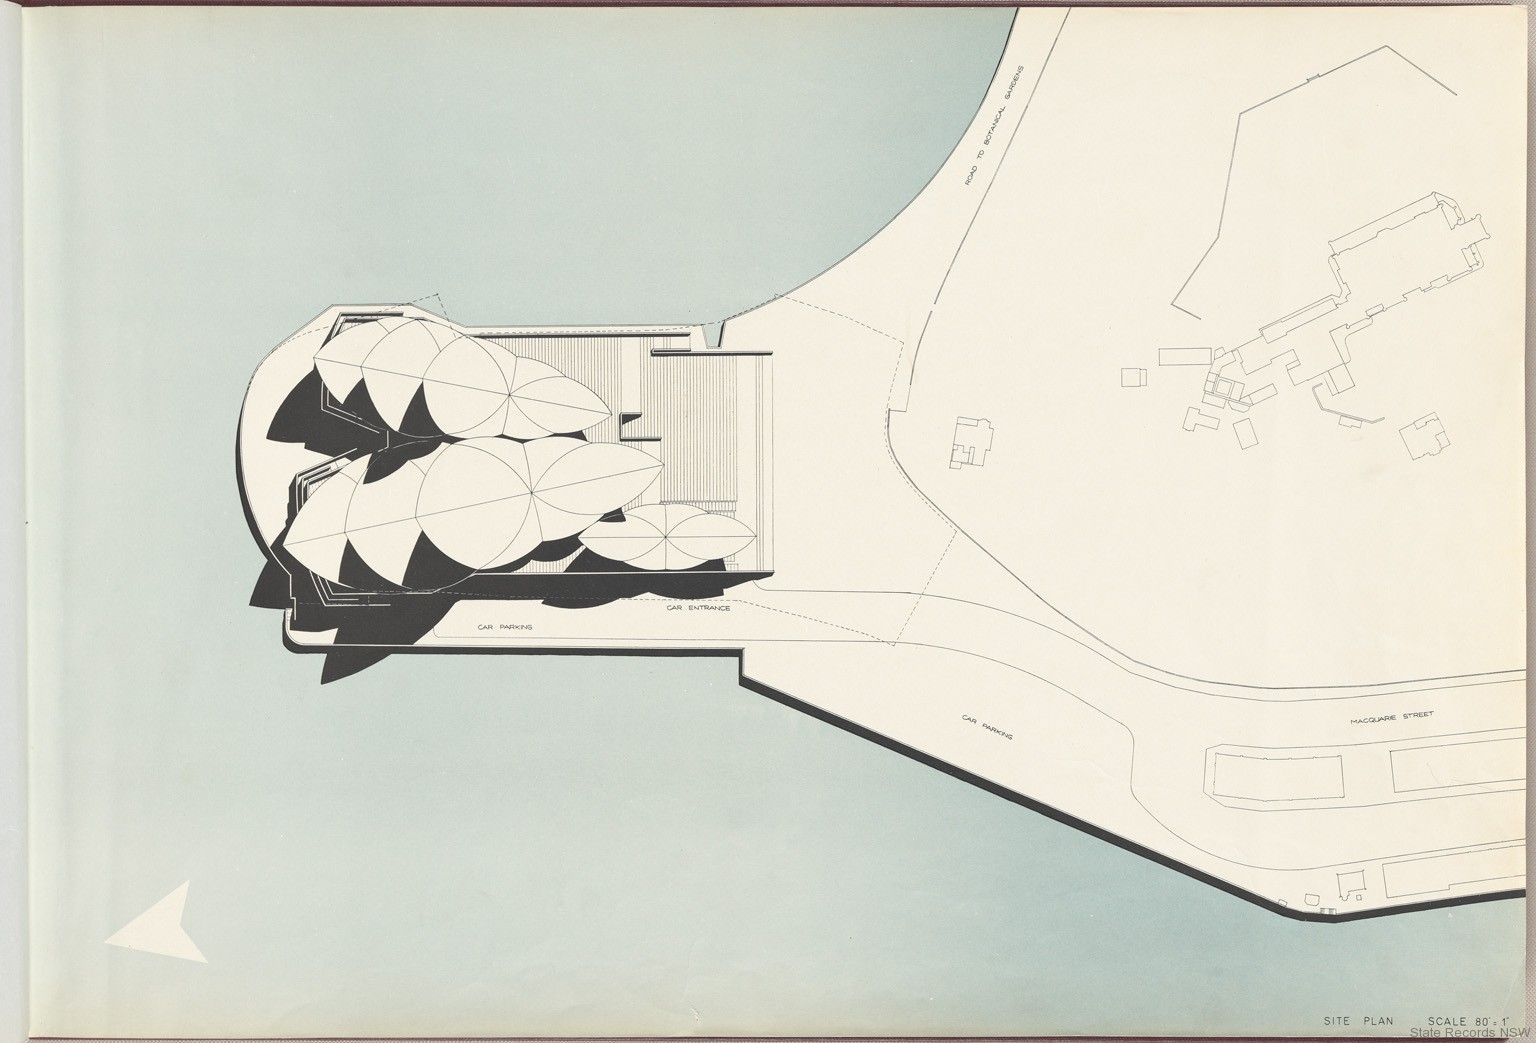 Site Plan Sydney Opera House Red Book Nrs 12707 Architecture Drawing Presentation Diagram Architecture Architecture Presentation